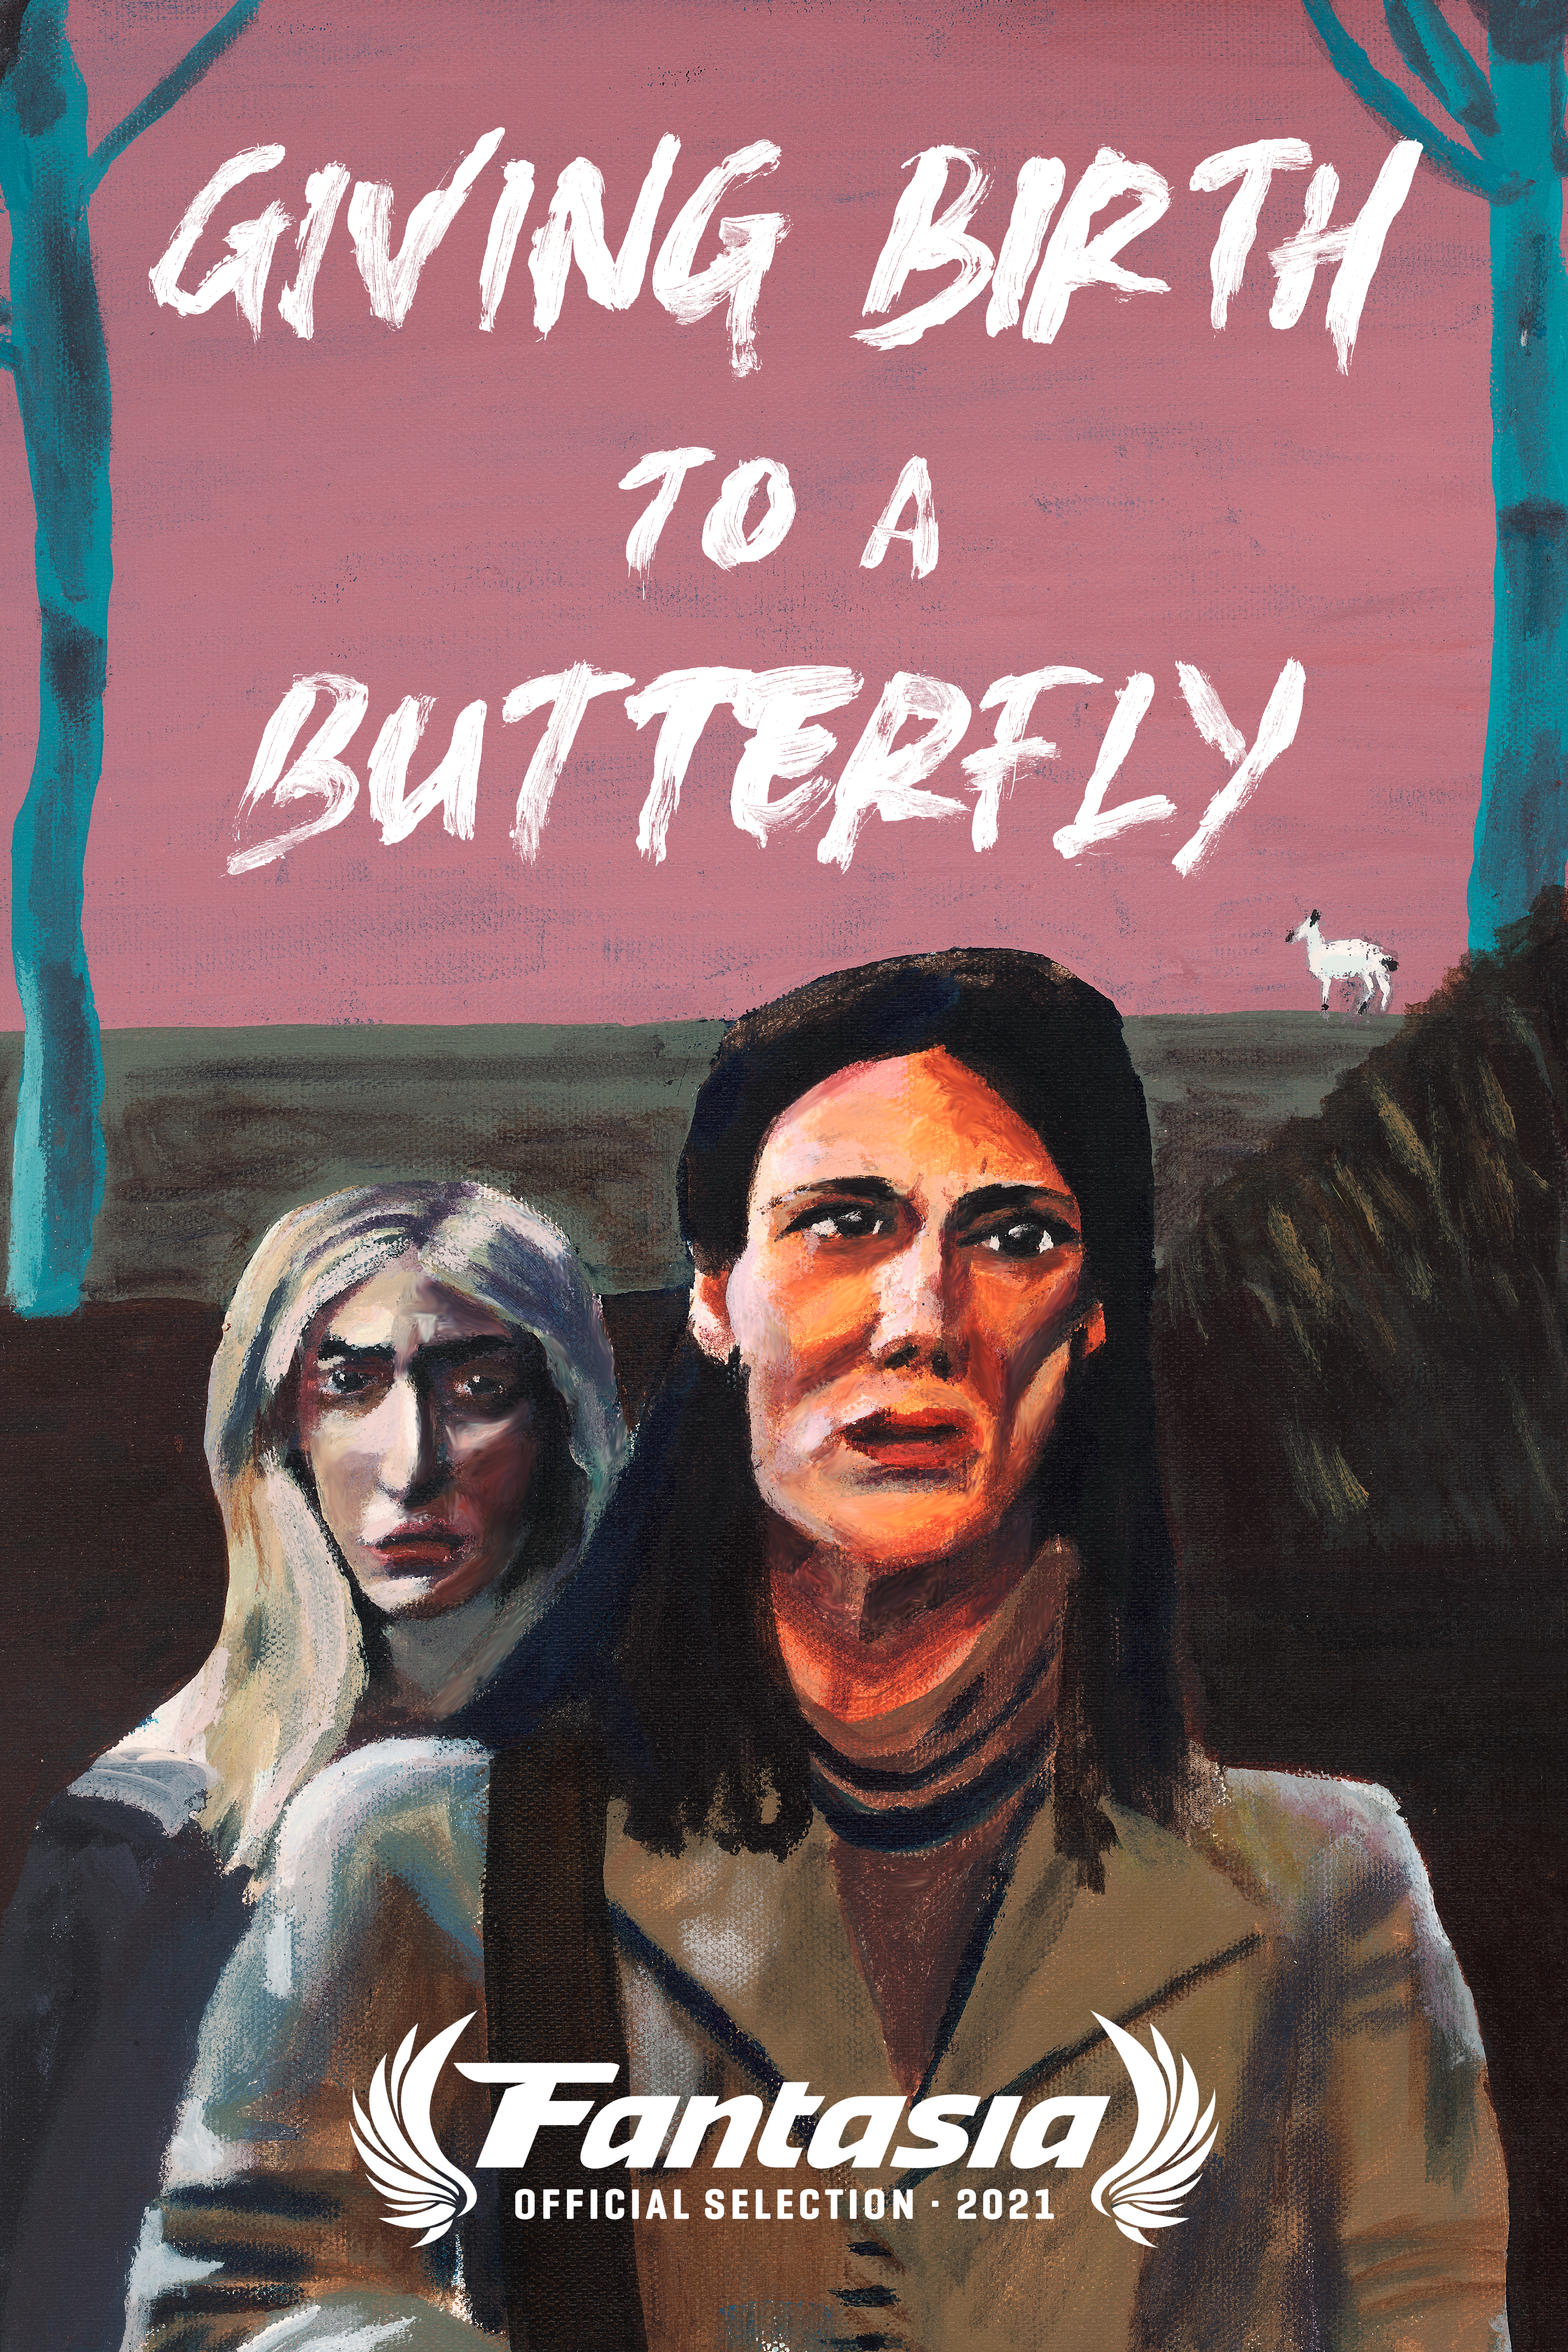 """A poster in a painted style that features two women. A young blonde woman stands behind an older brunette woman. The background is pink, with the title """"Giving Birth to a Butterfly"""" in white paint. A white deer with three legs is in the background."""